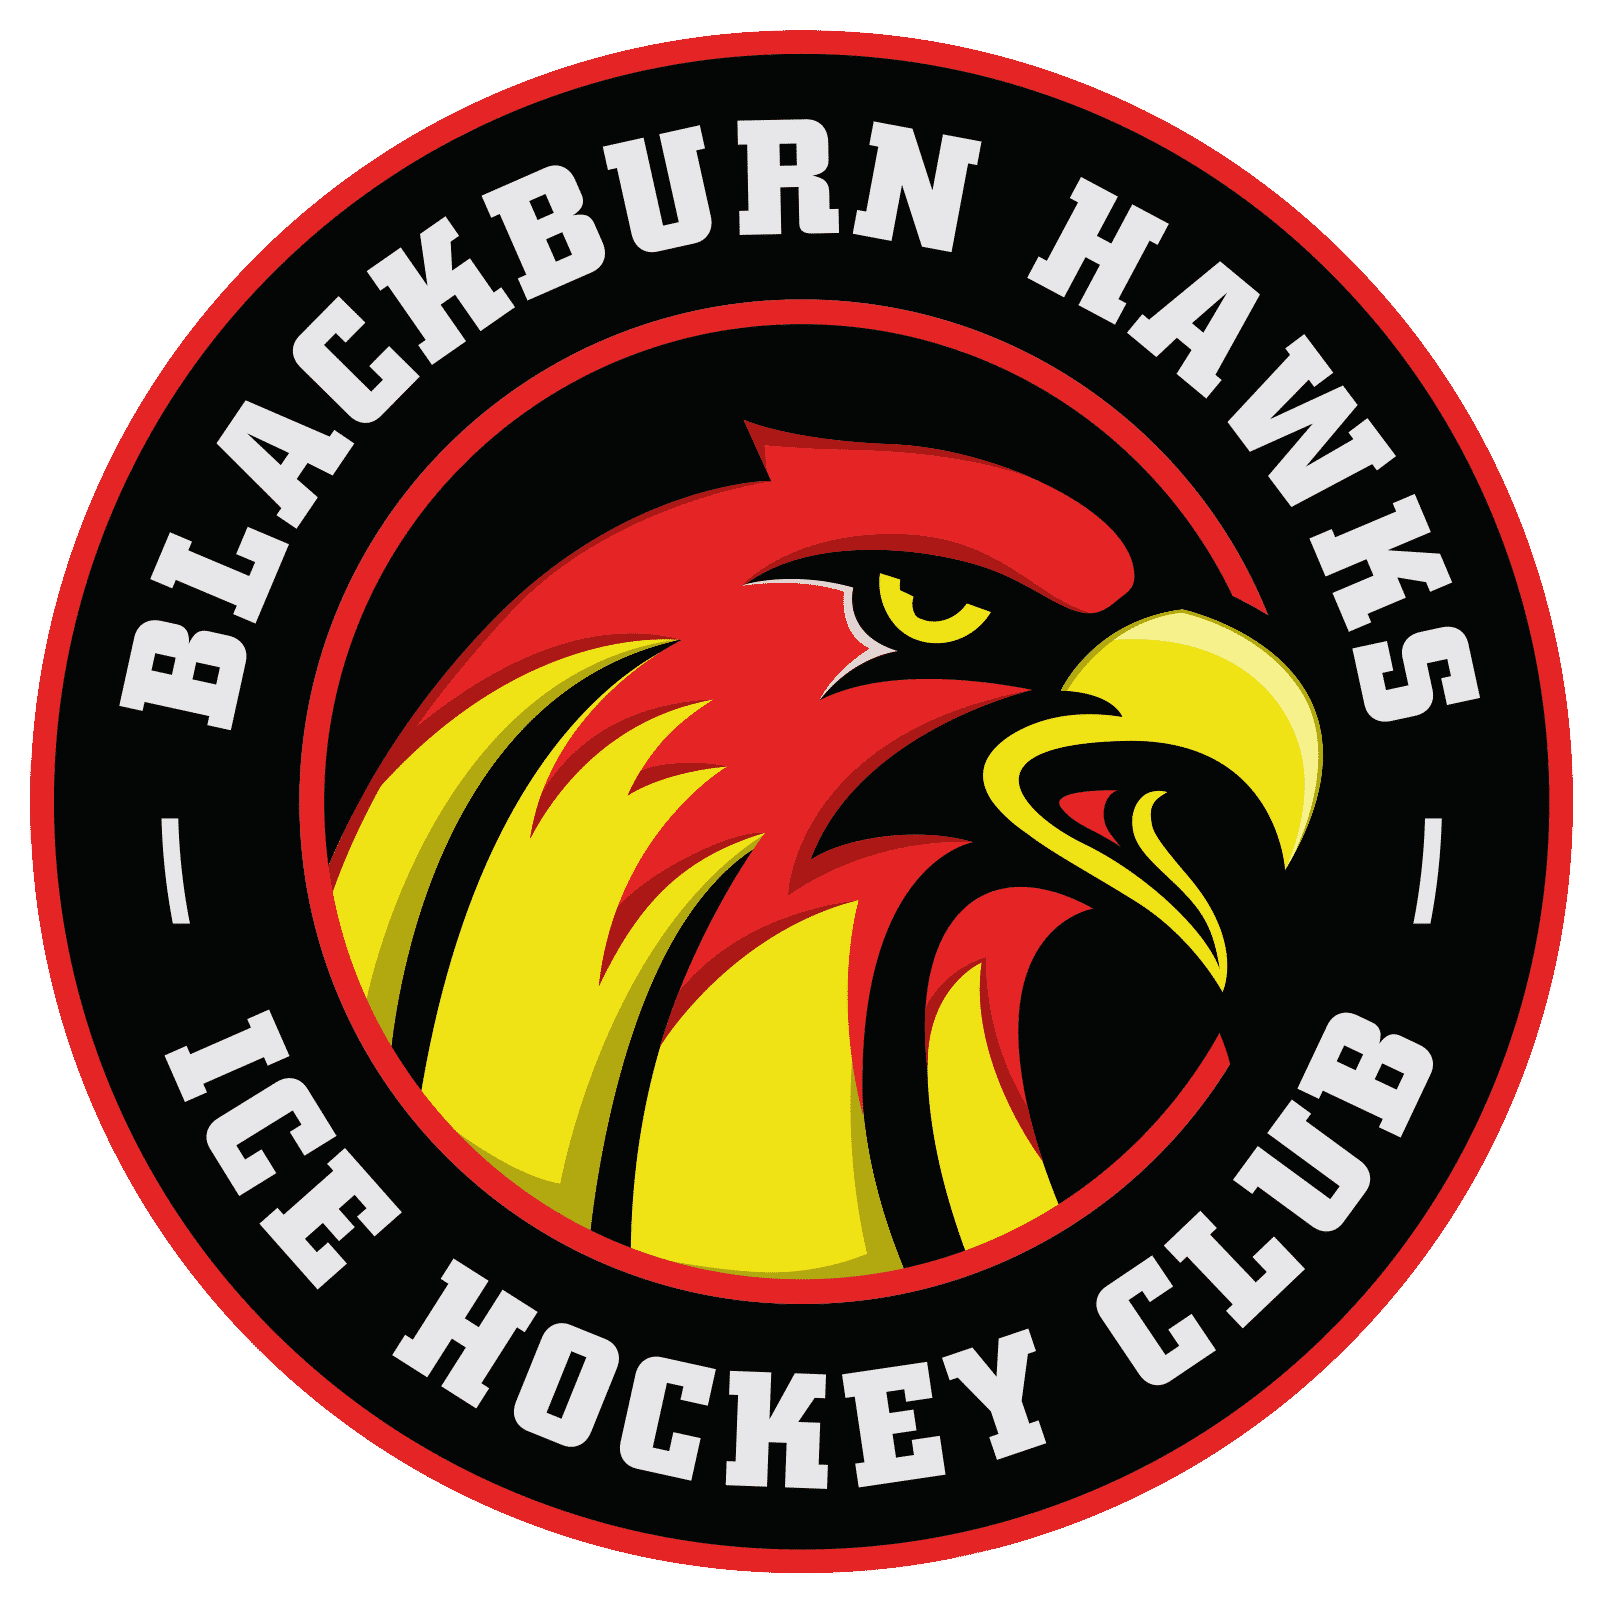 Blackburn Hawks